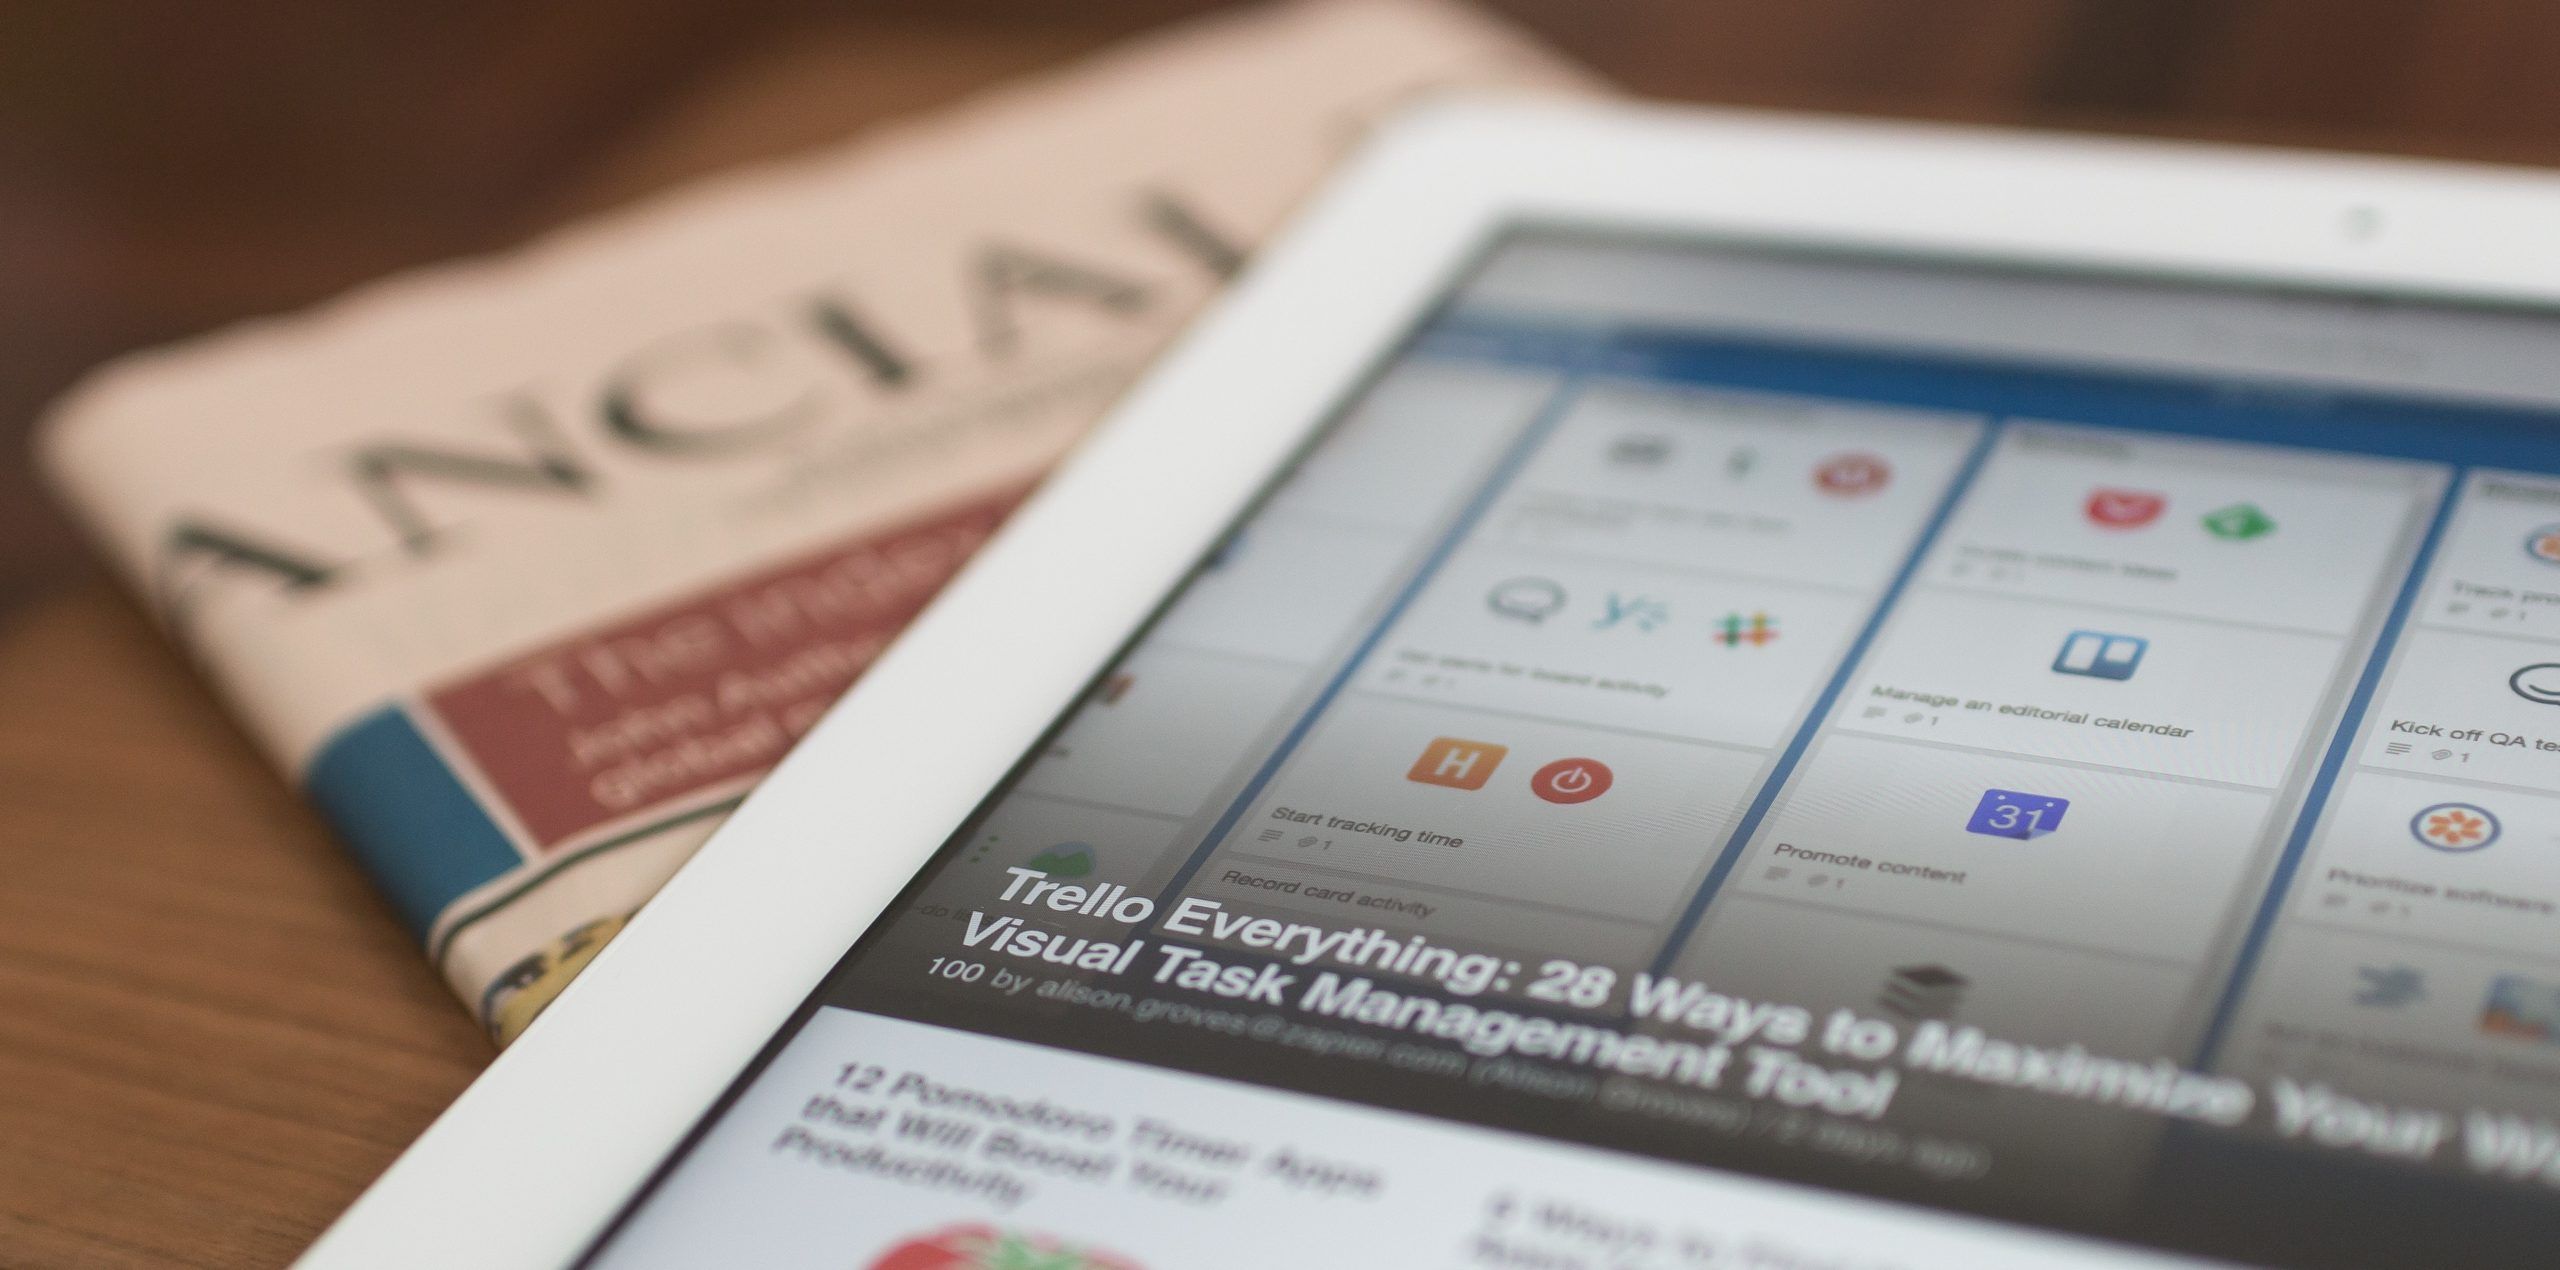 newspaper and iPad open to online articles